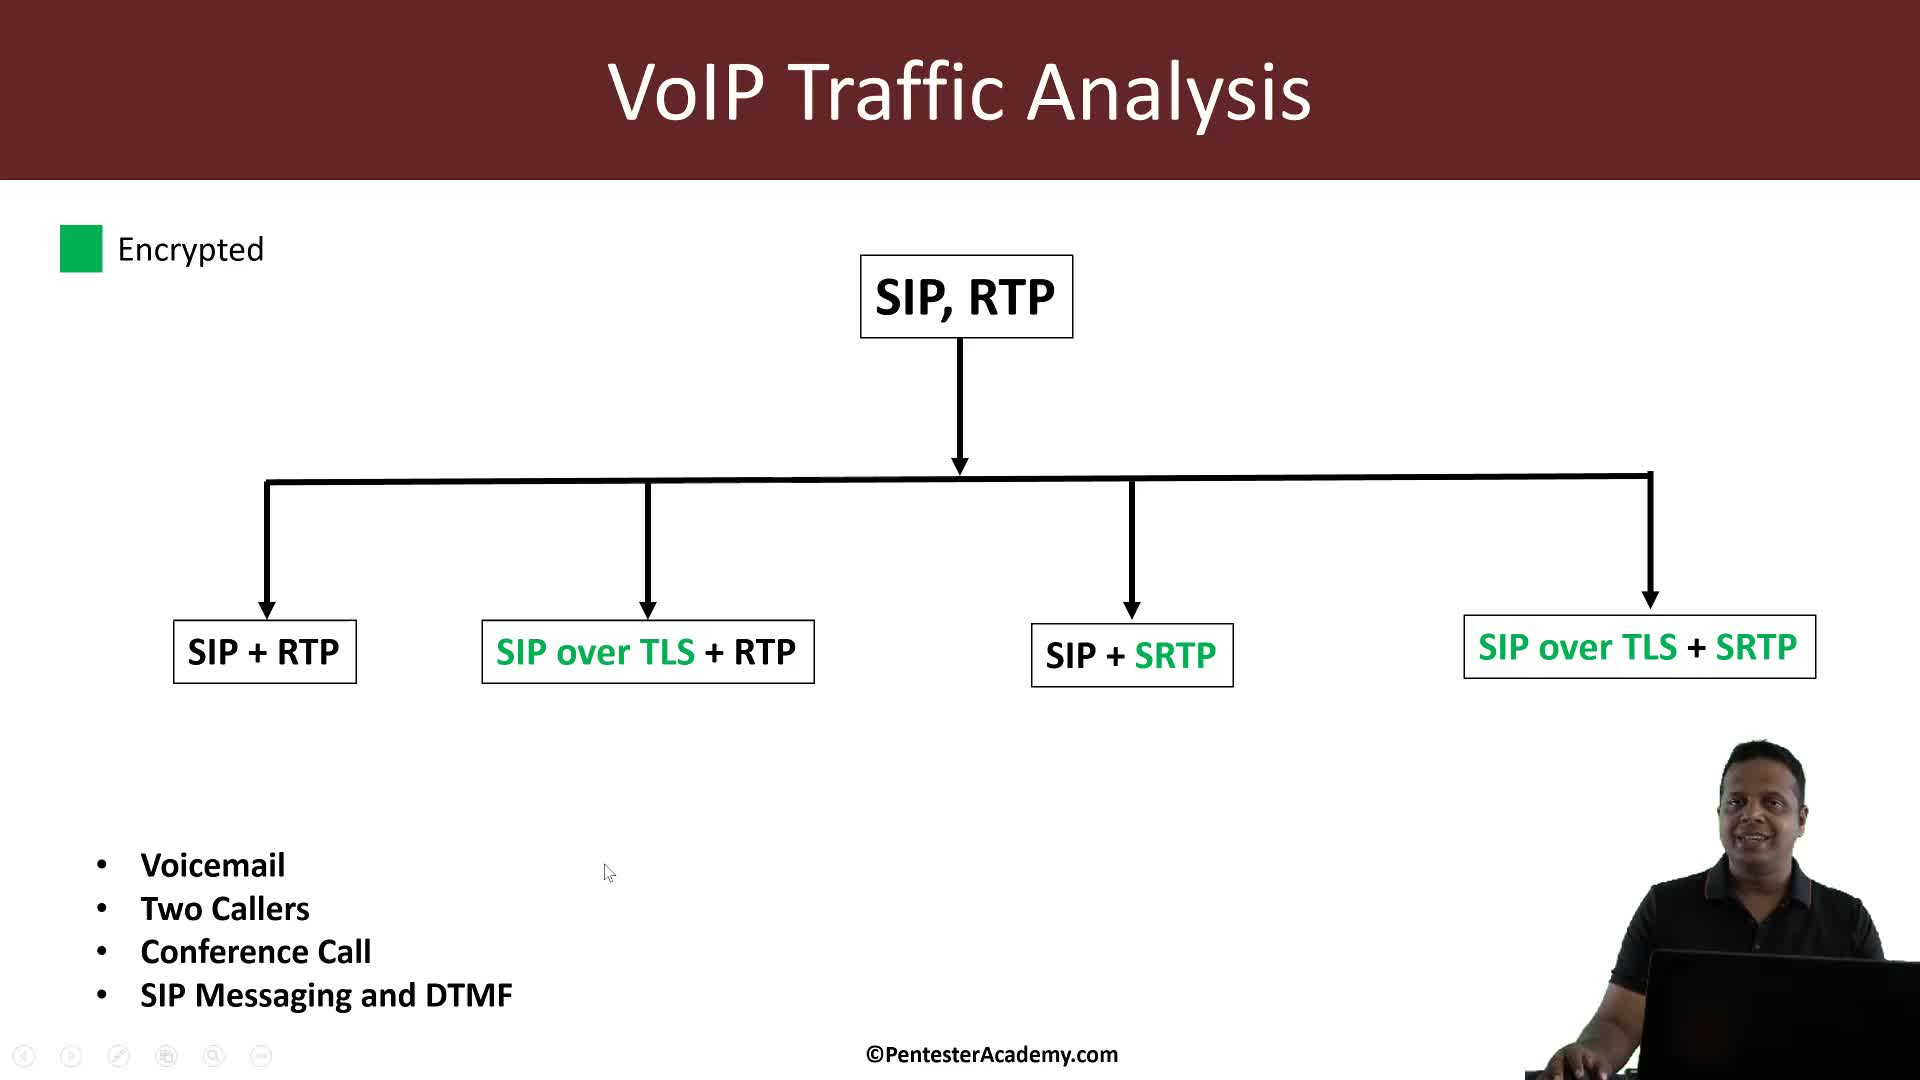 SIP + RTP Basics: Two Caller Traffic